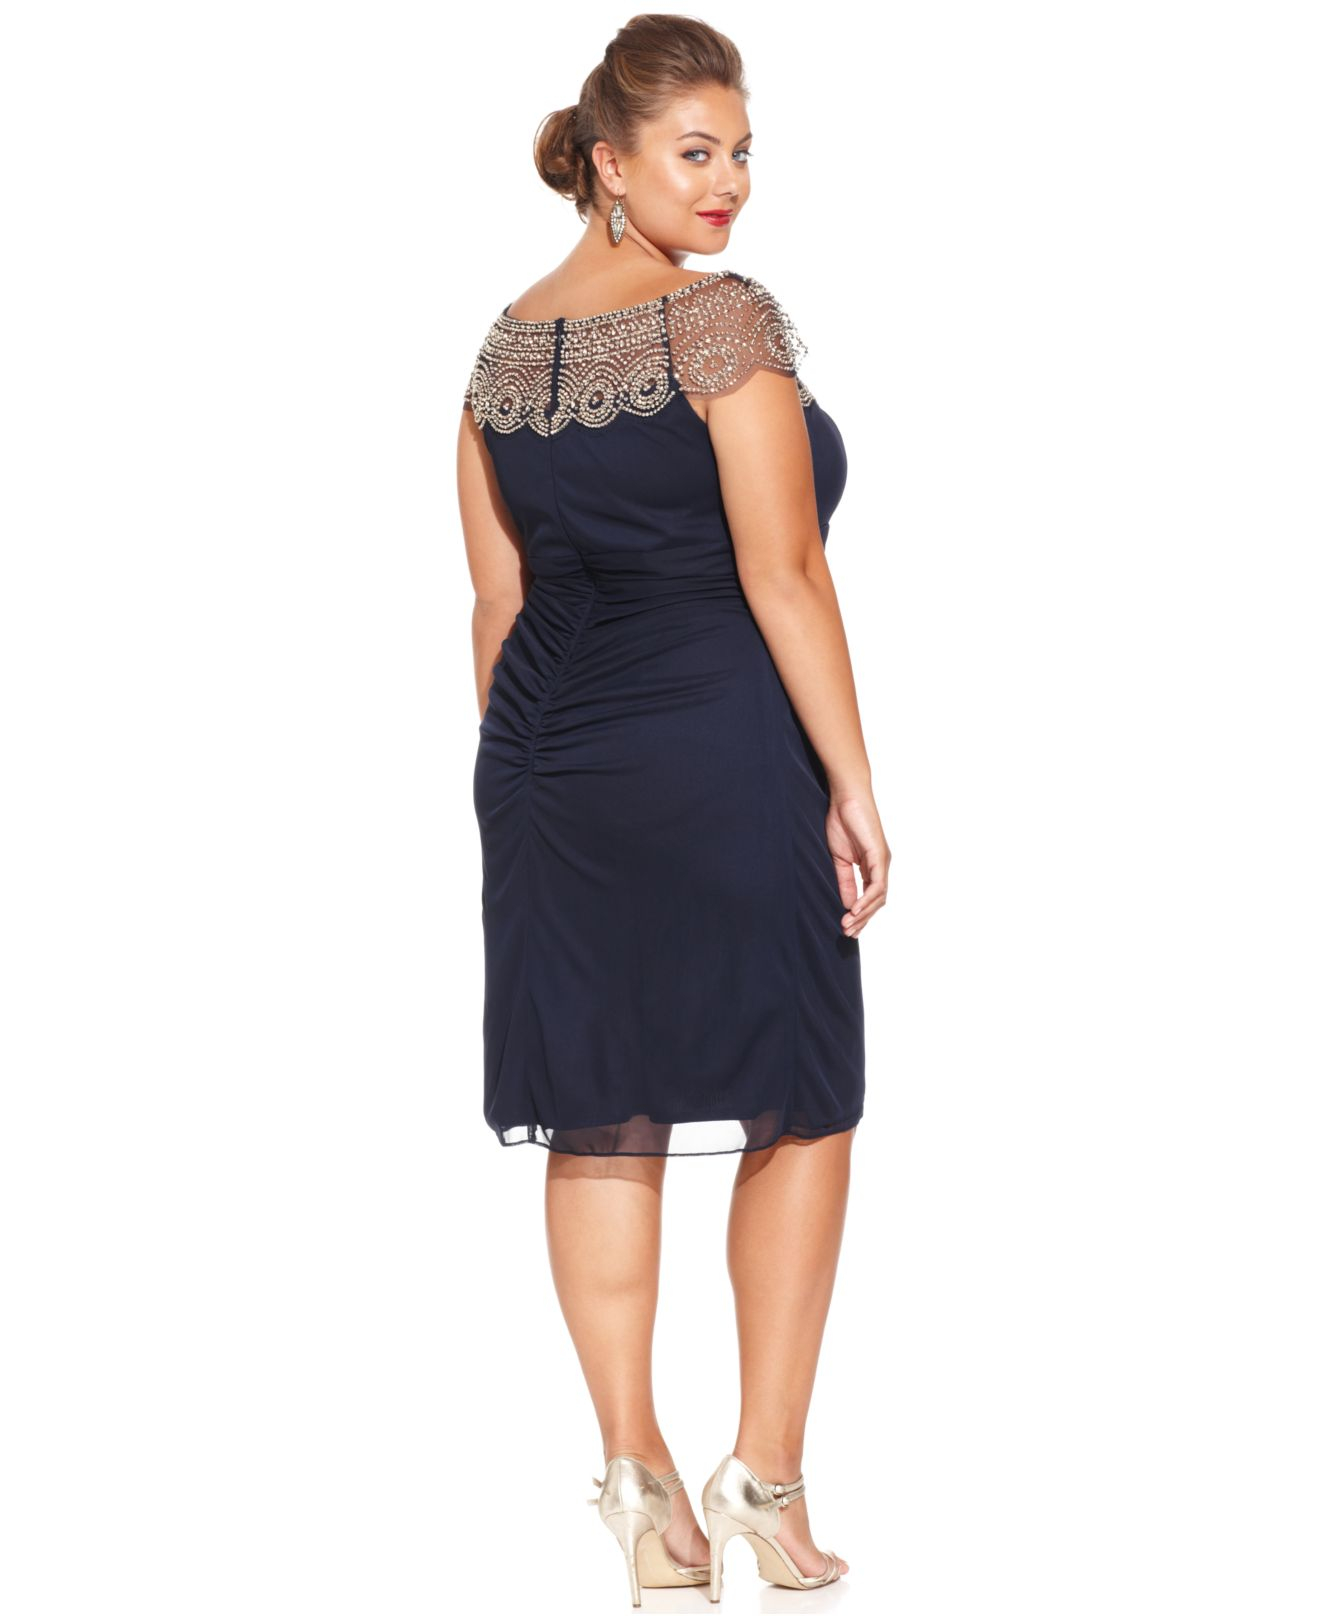 Lyst - Xscape Plus Size Cap-Sleeve Beaded Dress in Blue